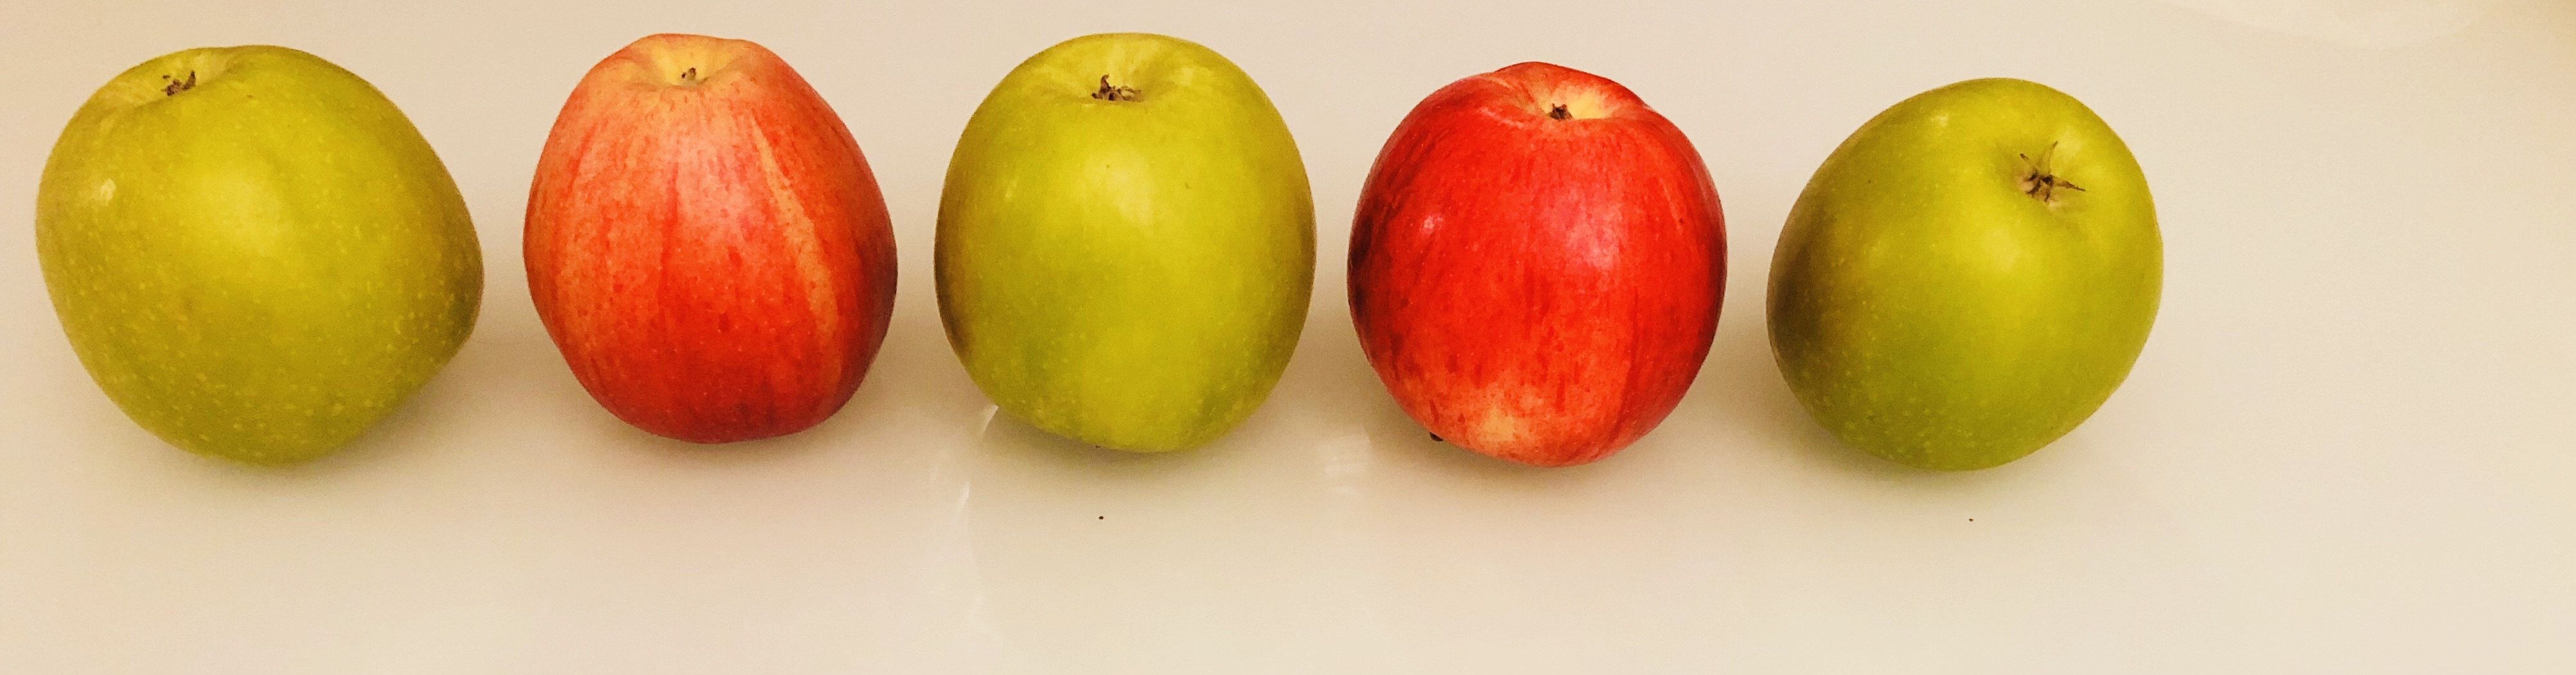 pattern recognition with apples